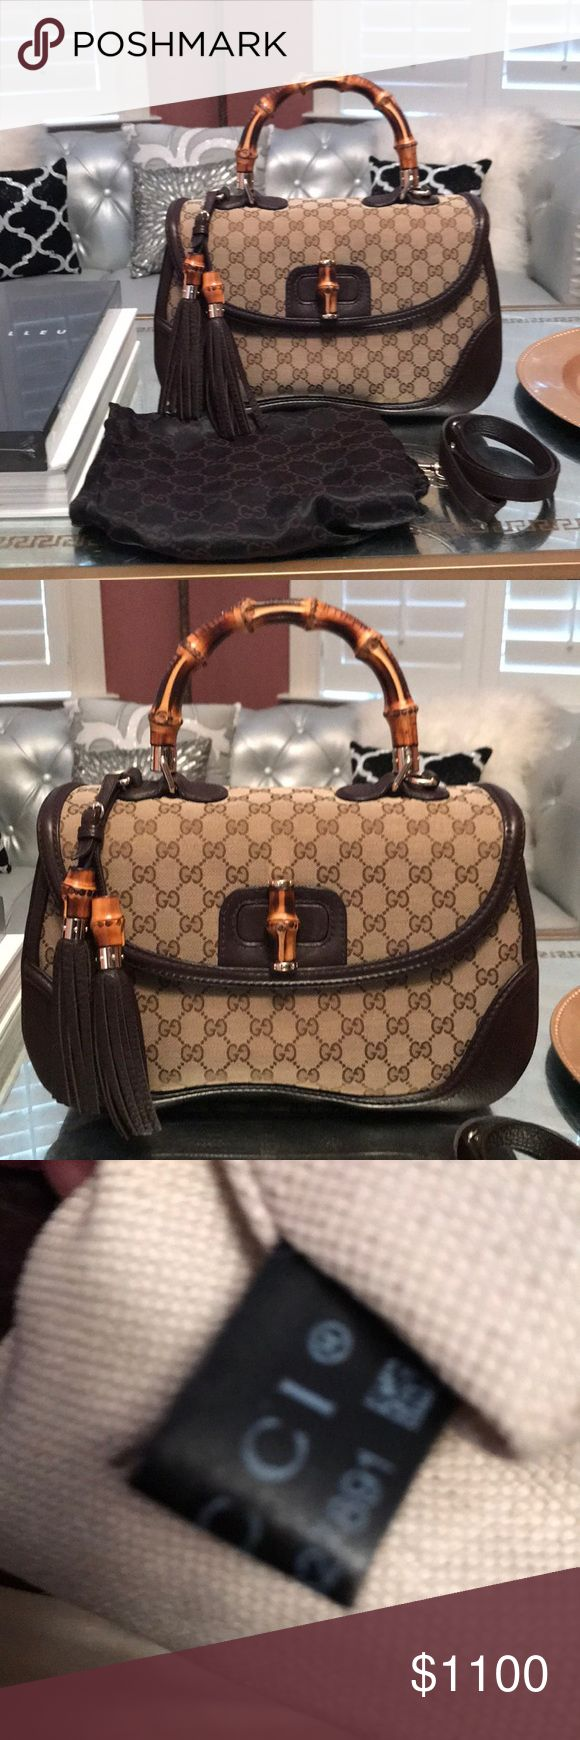 Gucci bamboo large bag Gucci logo bamboo large top handle bag. New. Barely used. No marks or worn places whatsoever. Comes with dust bag. Gorgeous gold and bamboo hardware. Also comes with shoulder strap. Gucci Bags Shoulder Bags